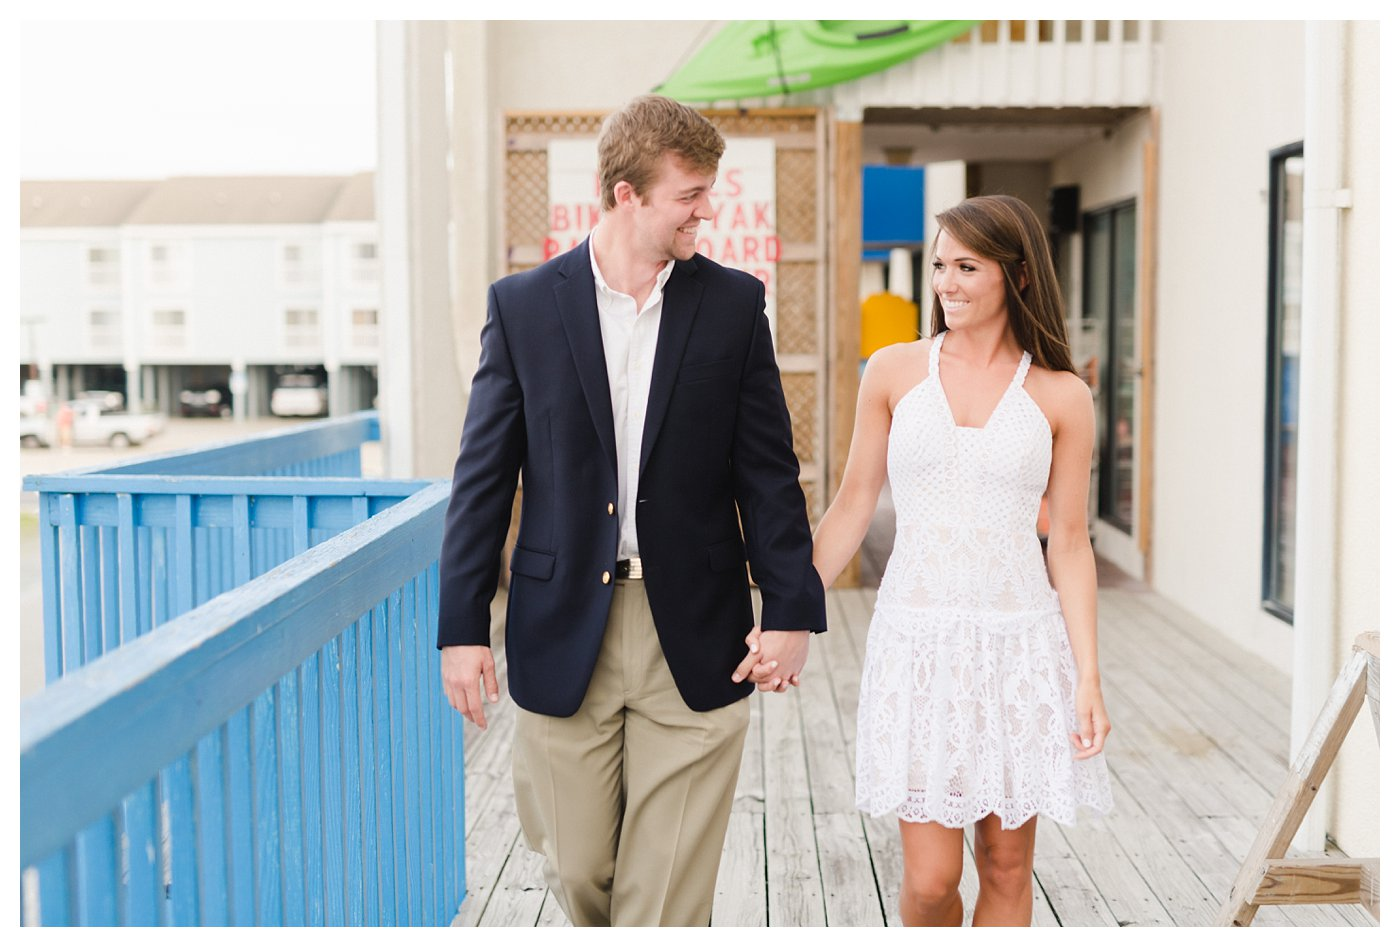 Ocean_Isle_NC_Coastal_Beach_Engagement_Session_Turqoise_White_Candlelit_0005.jpg